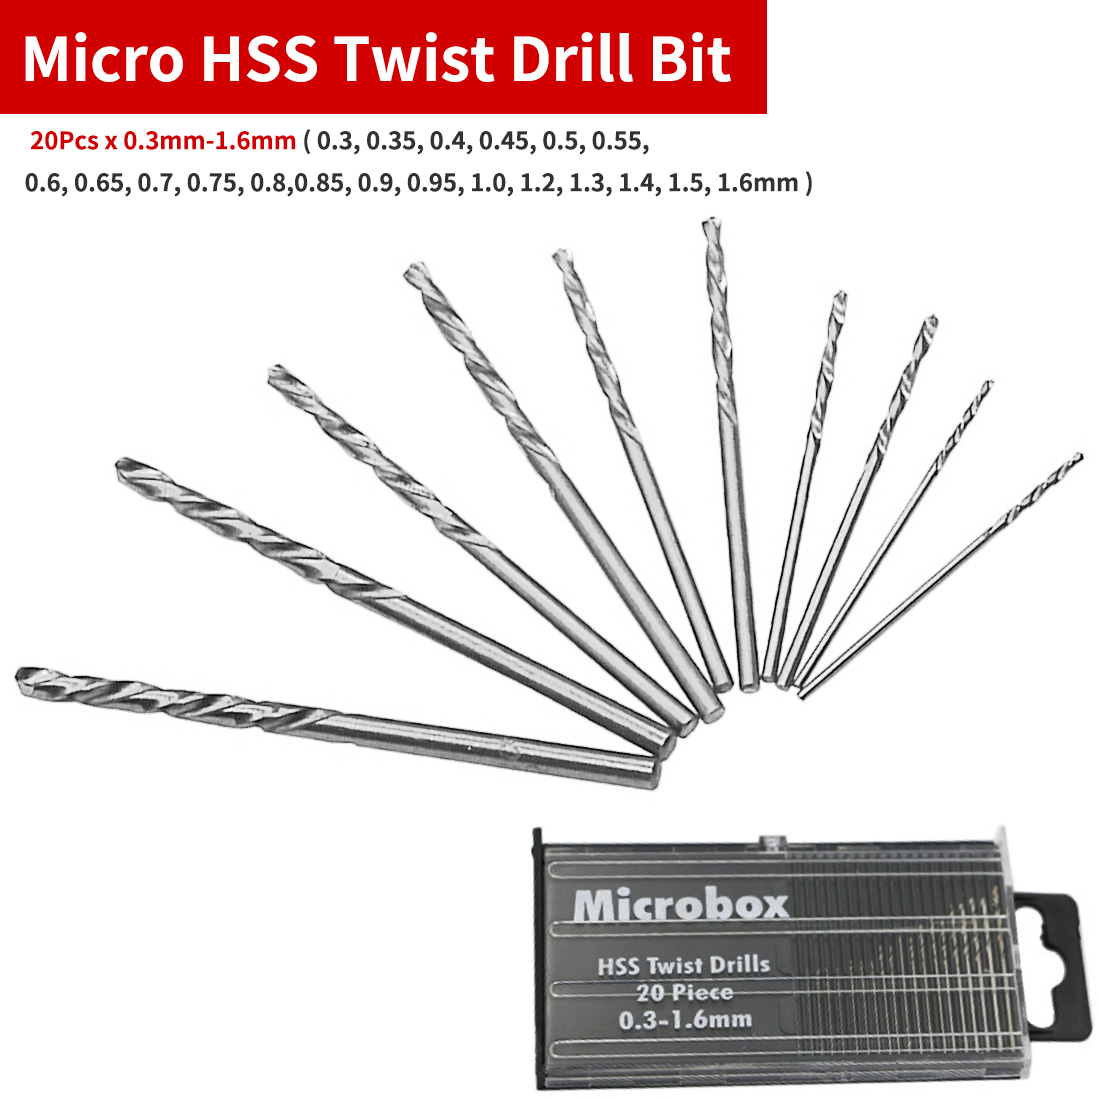 5 X HSS DRILL BIT 0.55 MM PRECISION GROUND QUALITY DRILLS